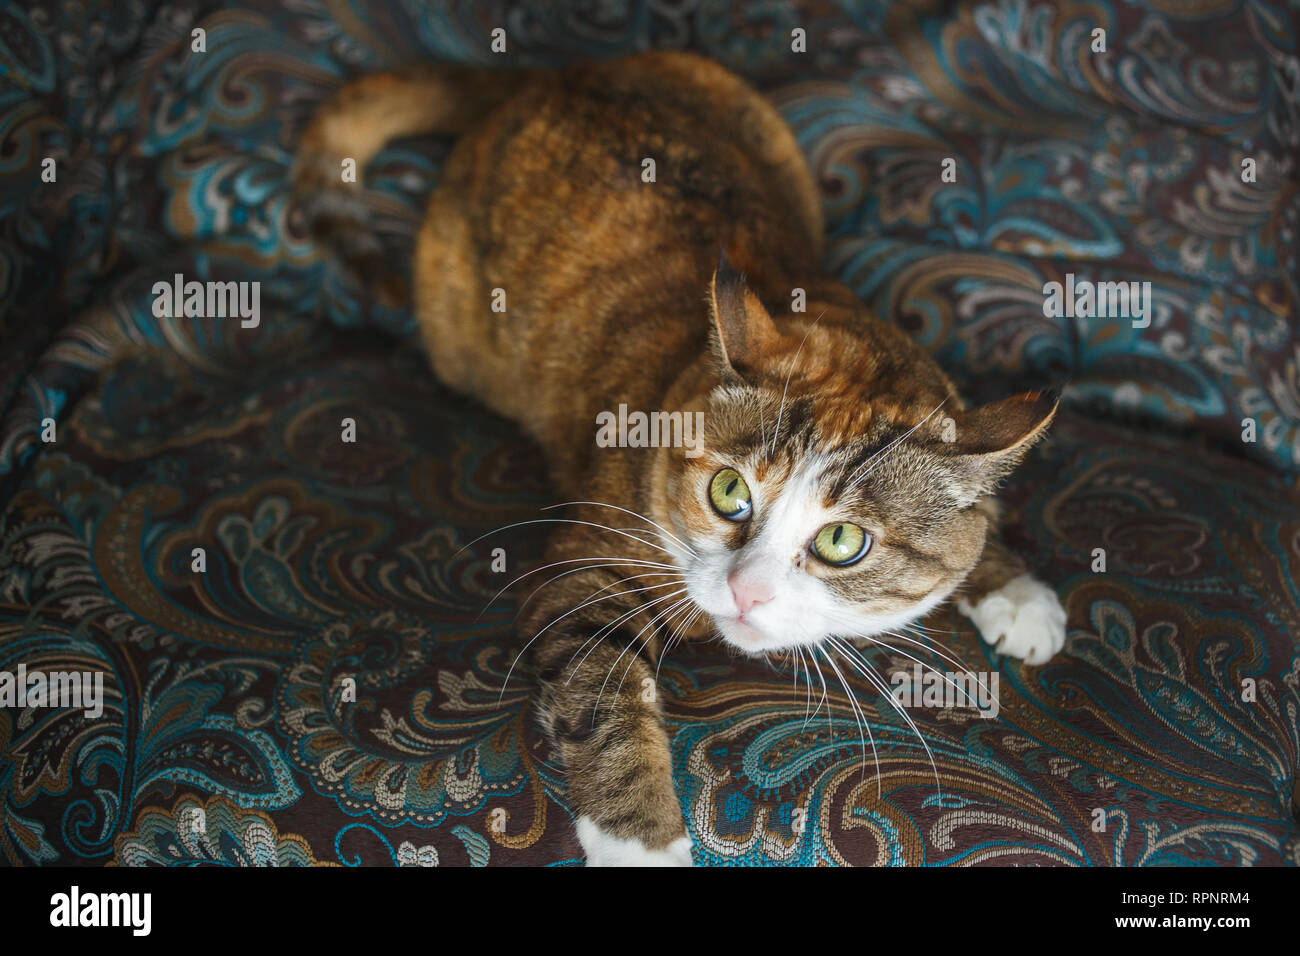 Funny Angry Ginger Cat with Harismatic Facial Expression Playing on Blue Sofa. - Stock Image